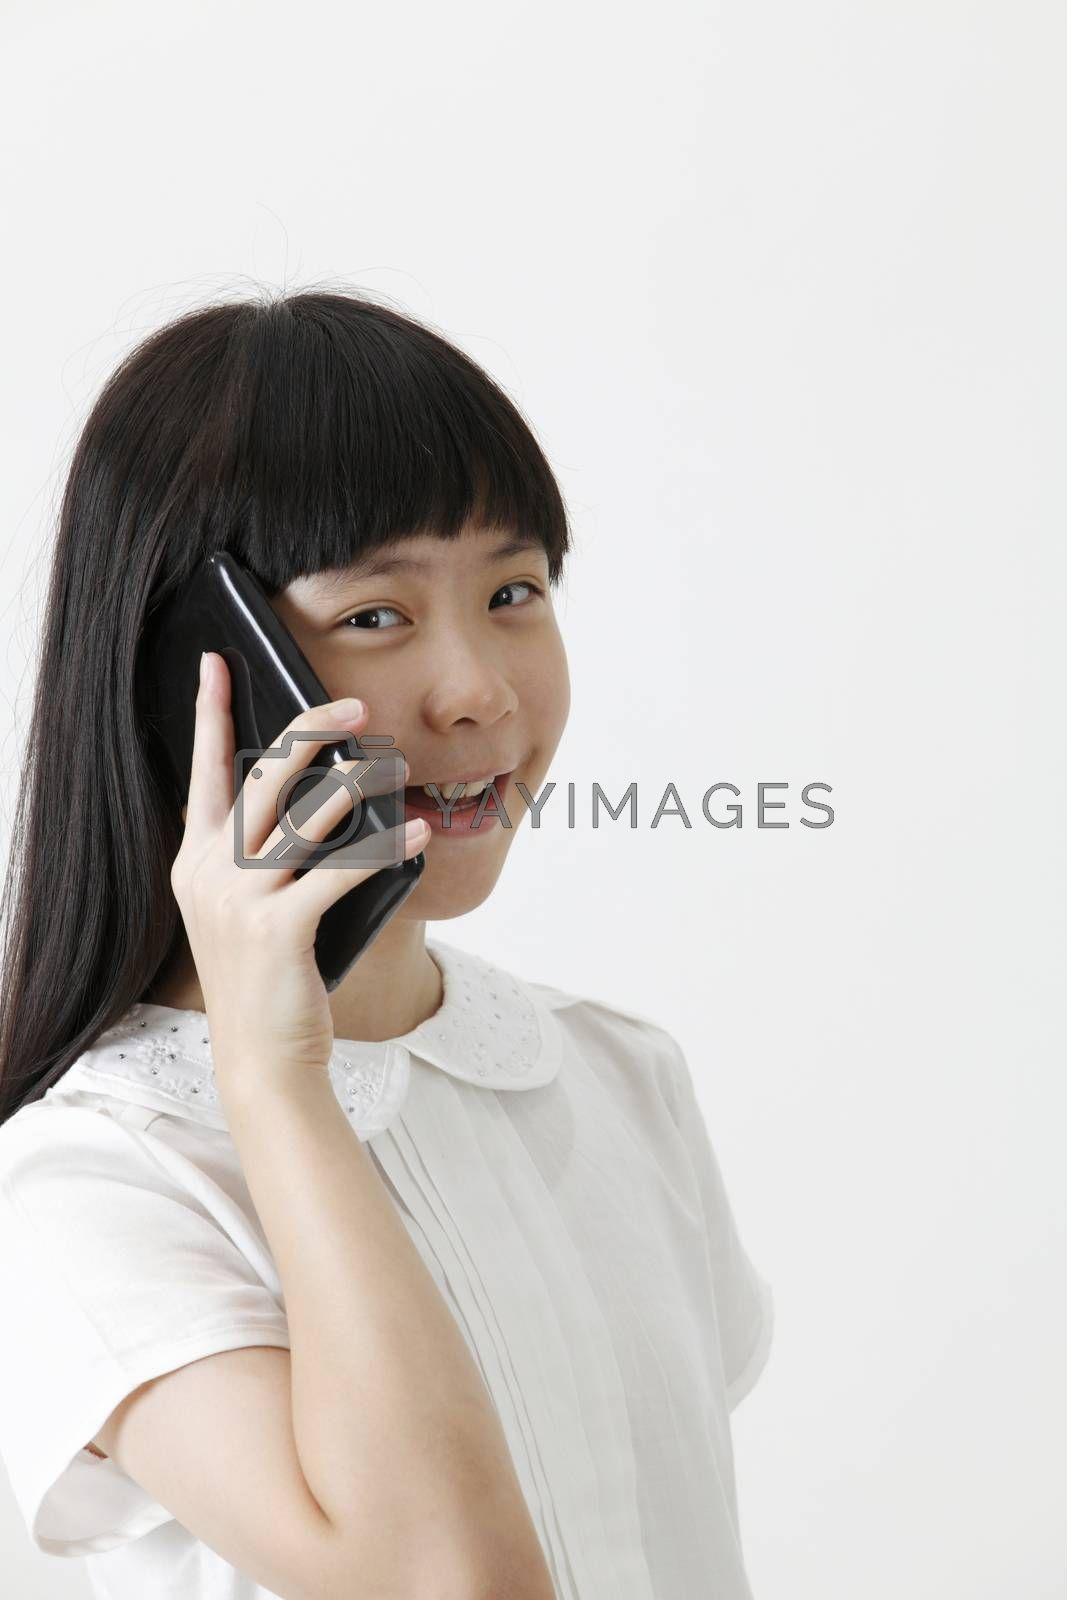 chinese girl talking with cellphone looking at camera